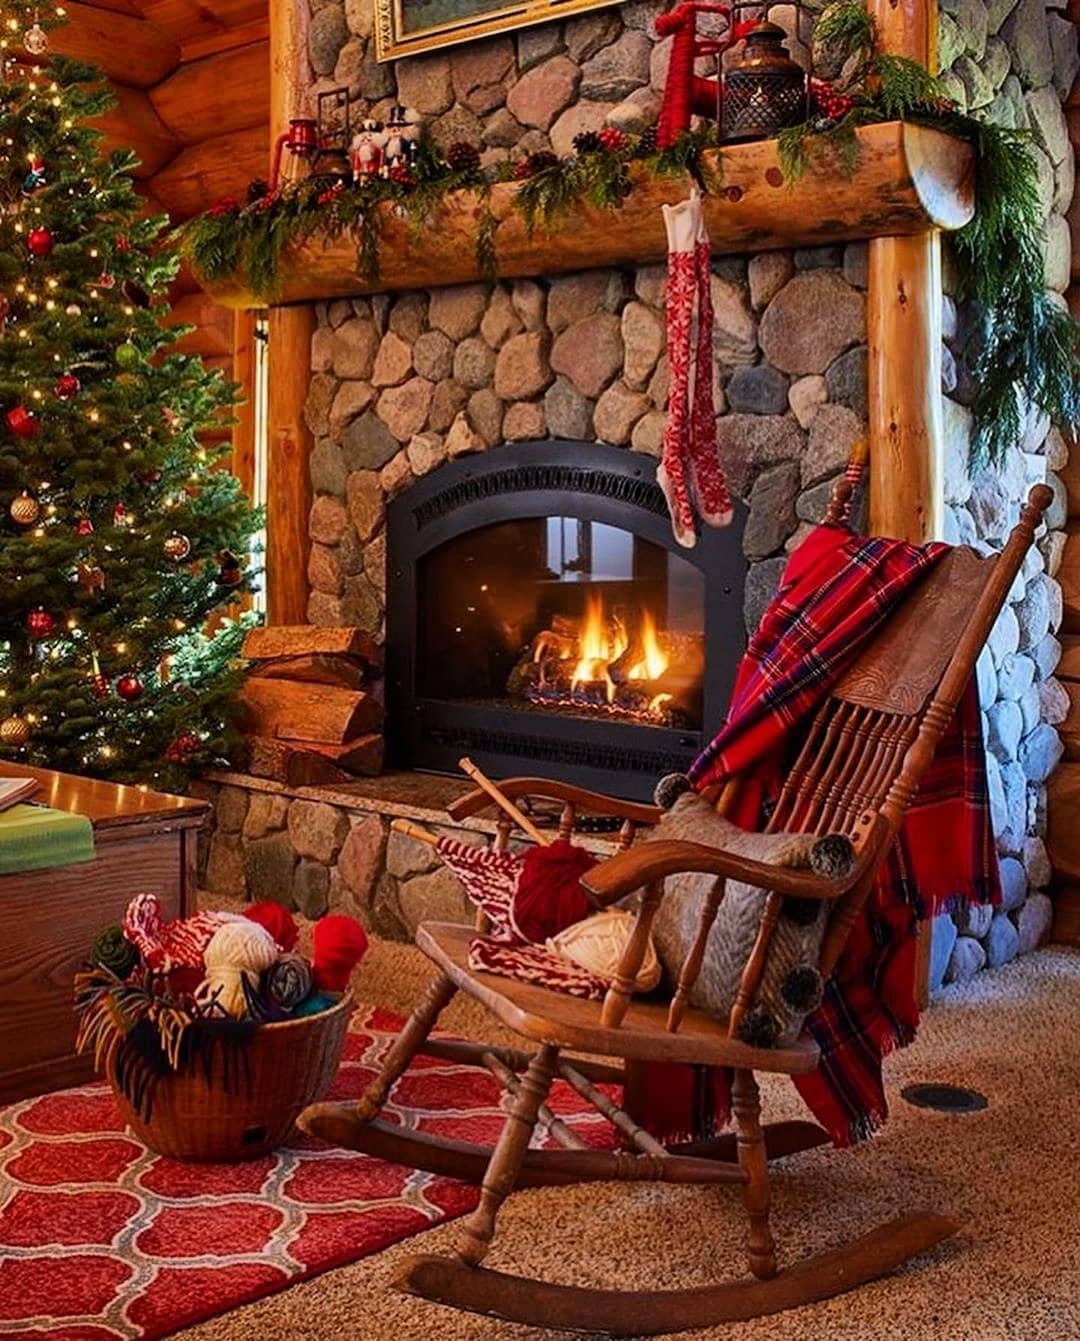 2019 2020 Lux Christmas Decoration Trends